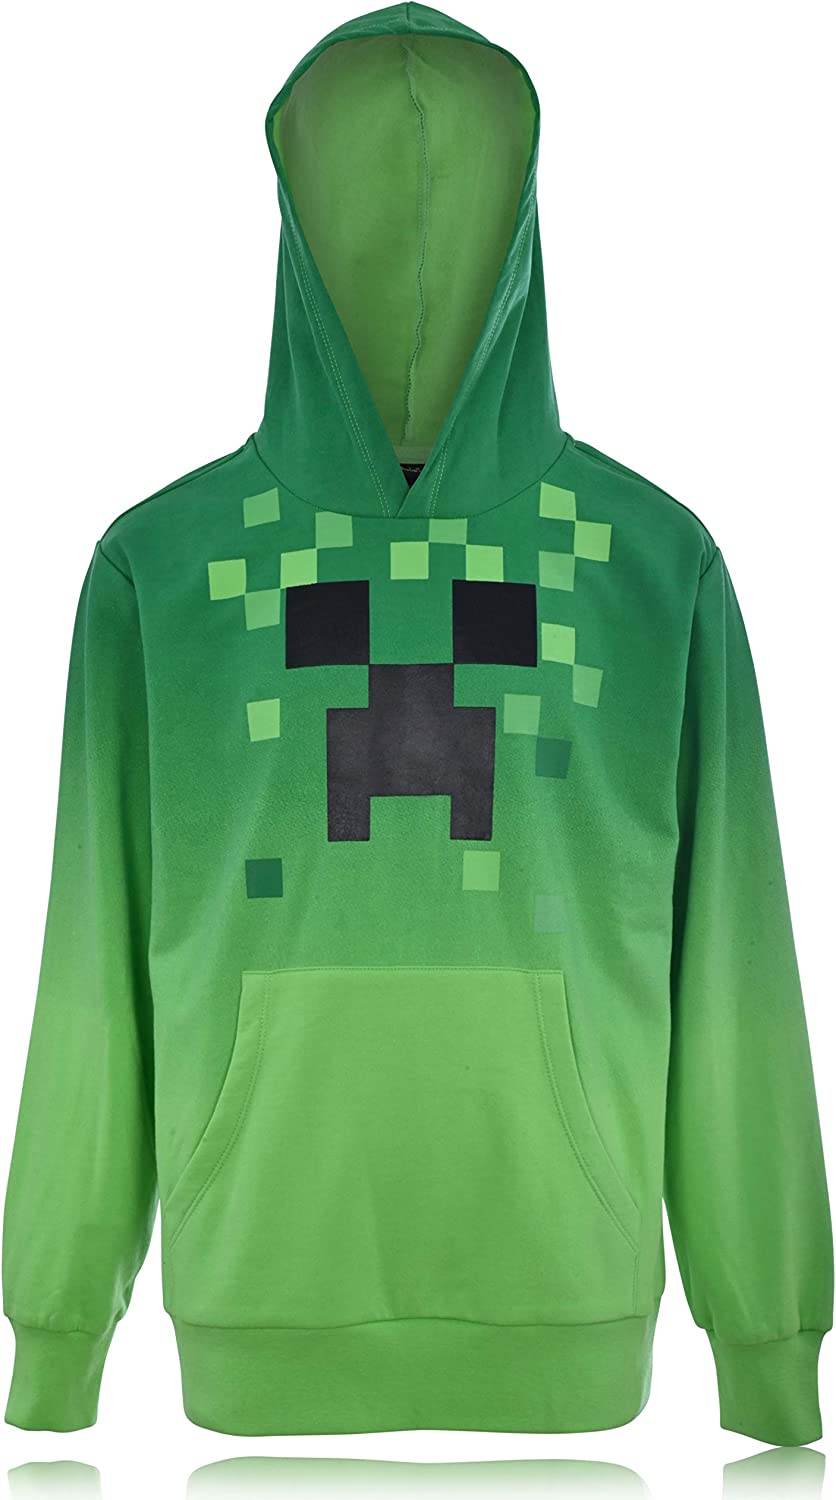 Minecraft Boys Video Ranking TOP5 Game Bargain sale Hoodie - Creeper Black Face Green and